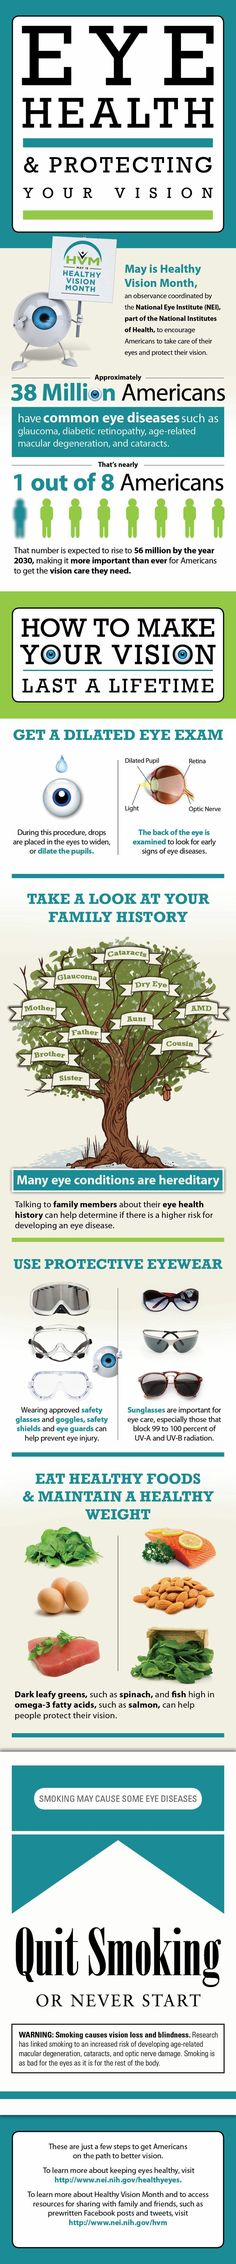 More about eye health from the National Eye Institute. (scheduled via http://www.tailwindapp.com?utm_source=pinterest&utm_medium=twpin&utm_content=post179429&utm_campaign=scheduler_attribution)